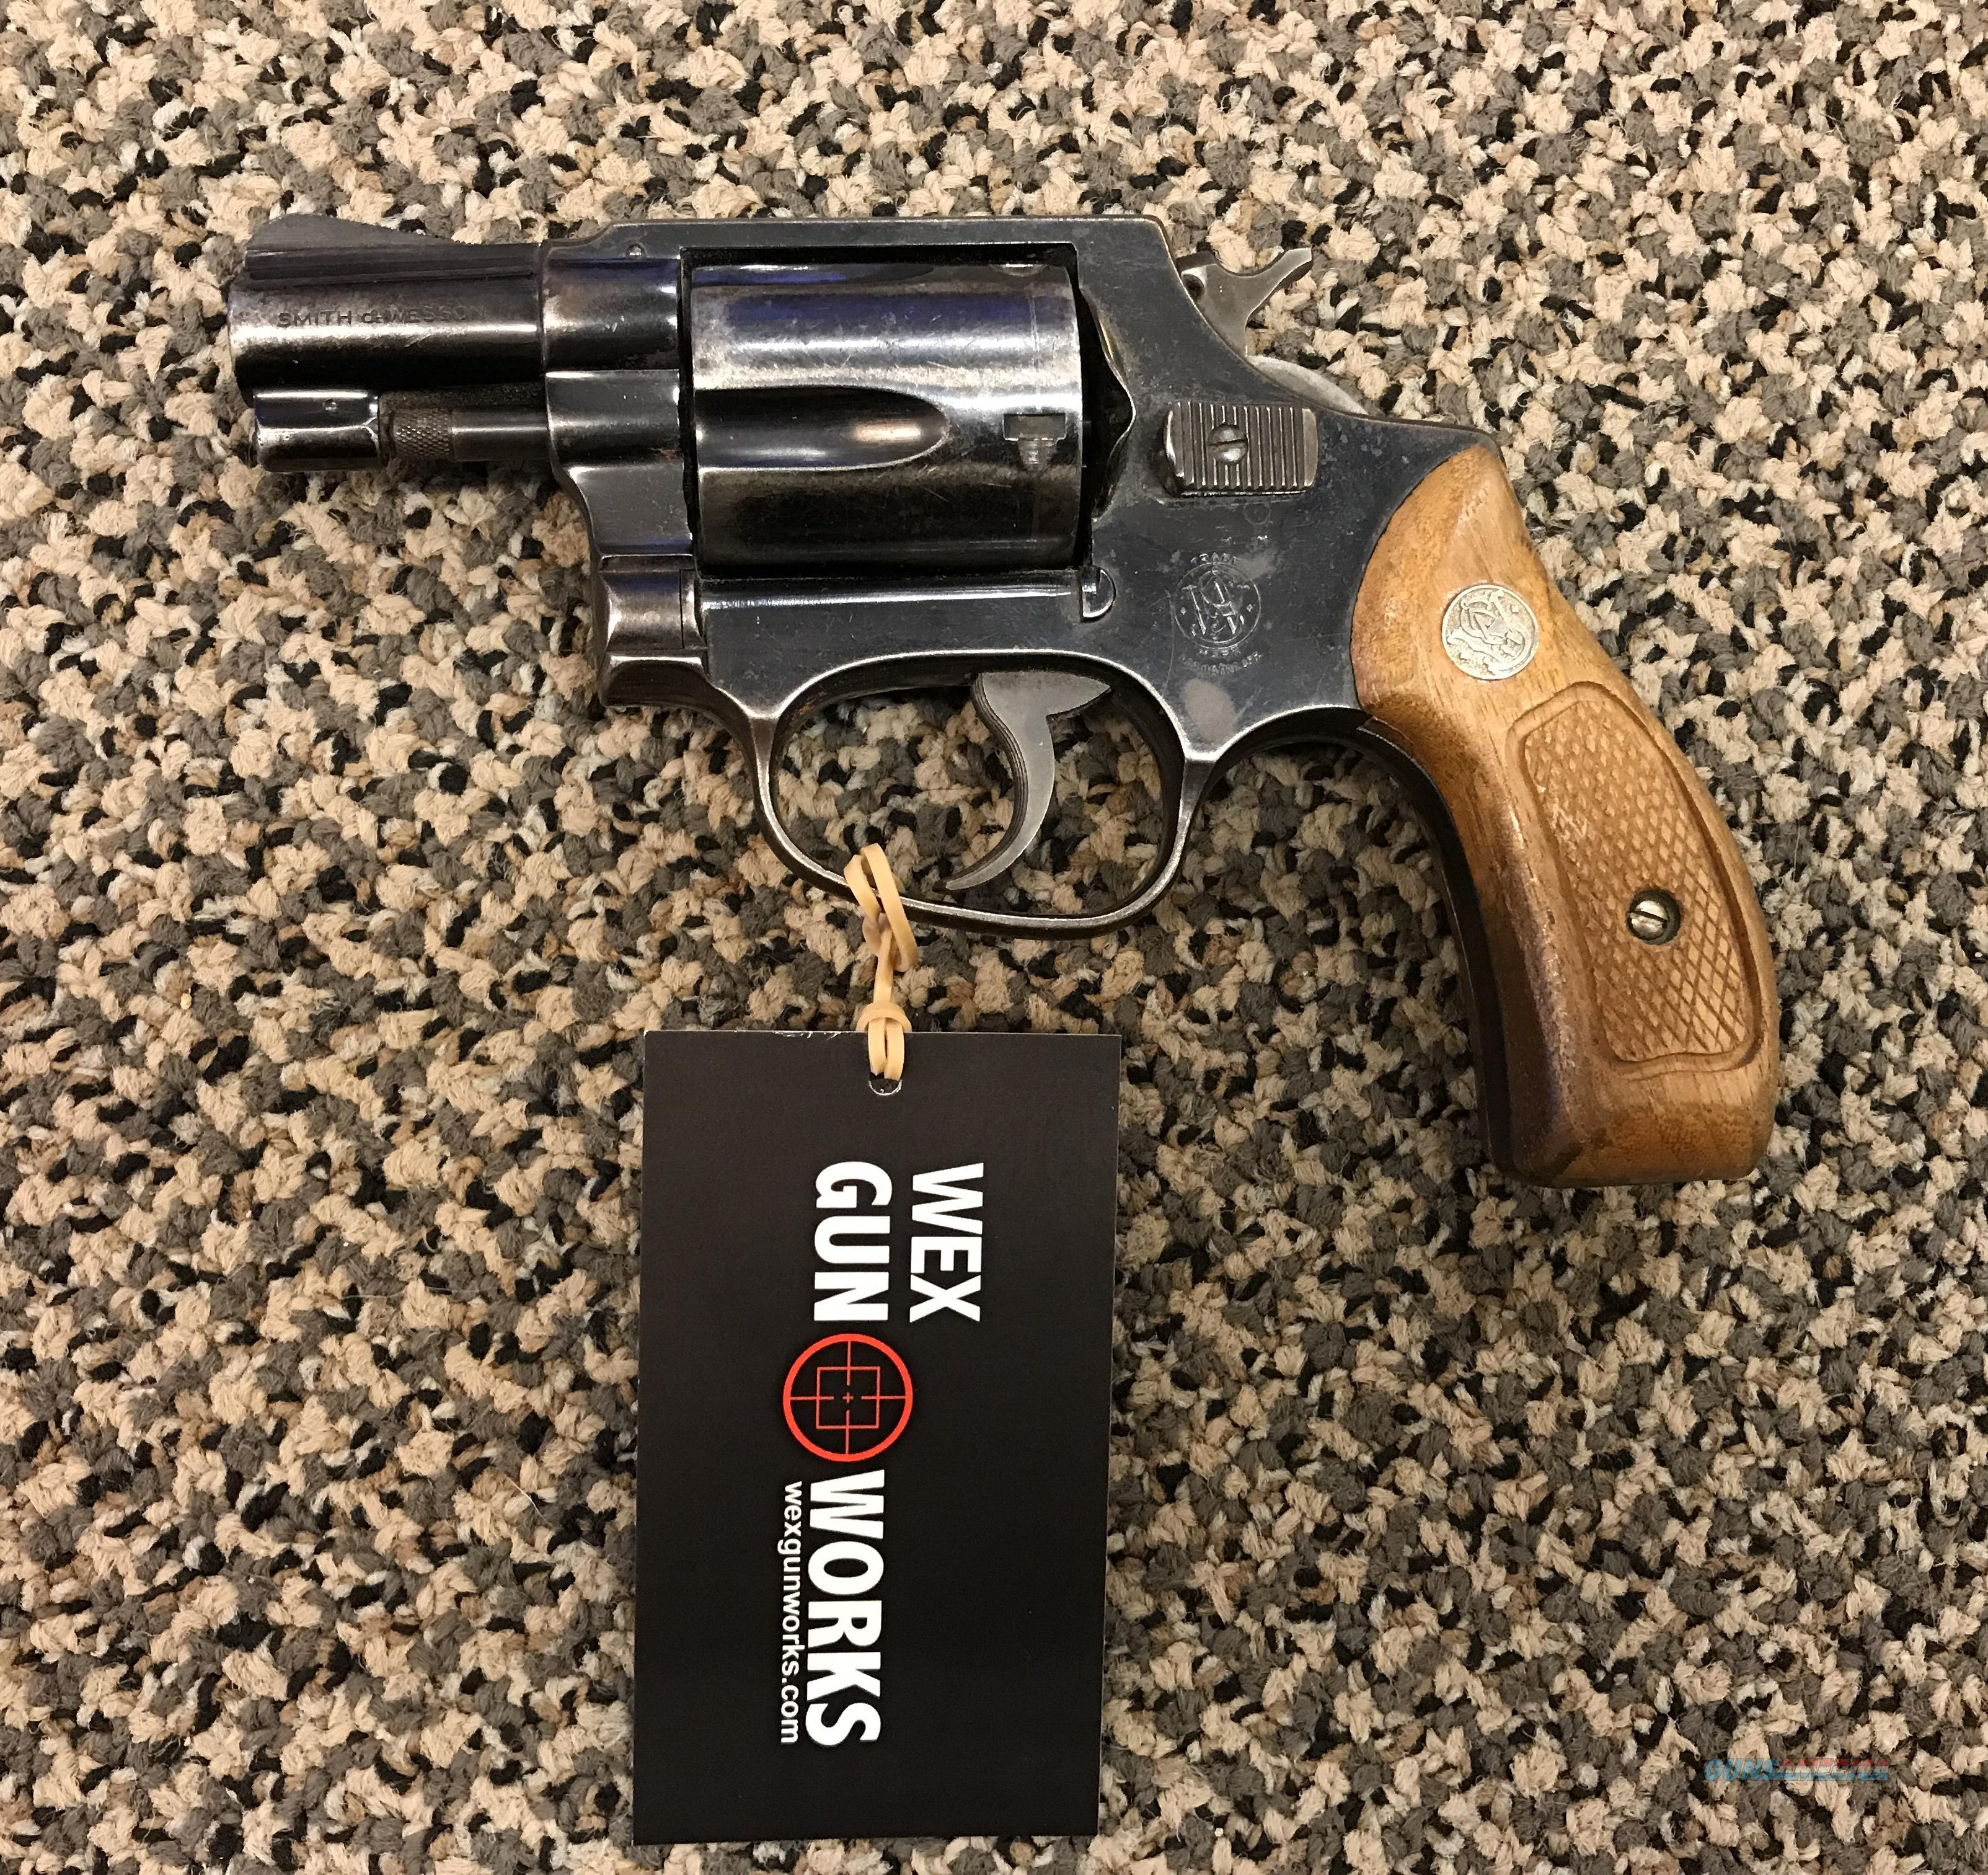 S&W PRE MODEL 36 FIVE SHOT .38 SPECIAL 1 7/8 INCH BBL  Guns > Pistols > Smith & Wesson Revolvers > Small Frame ( J )